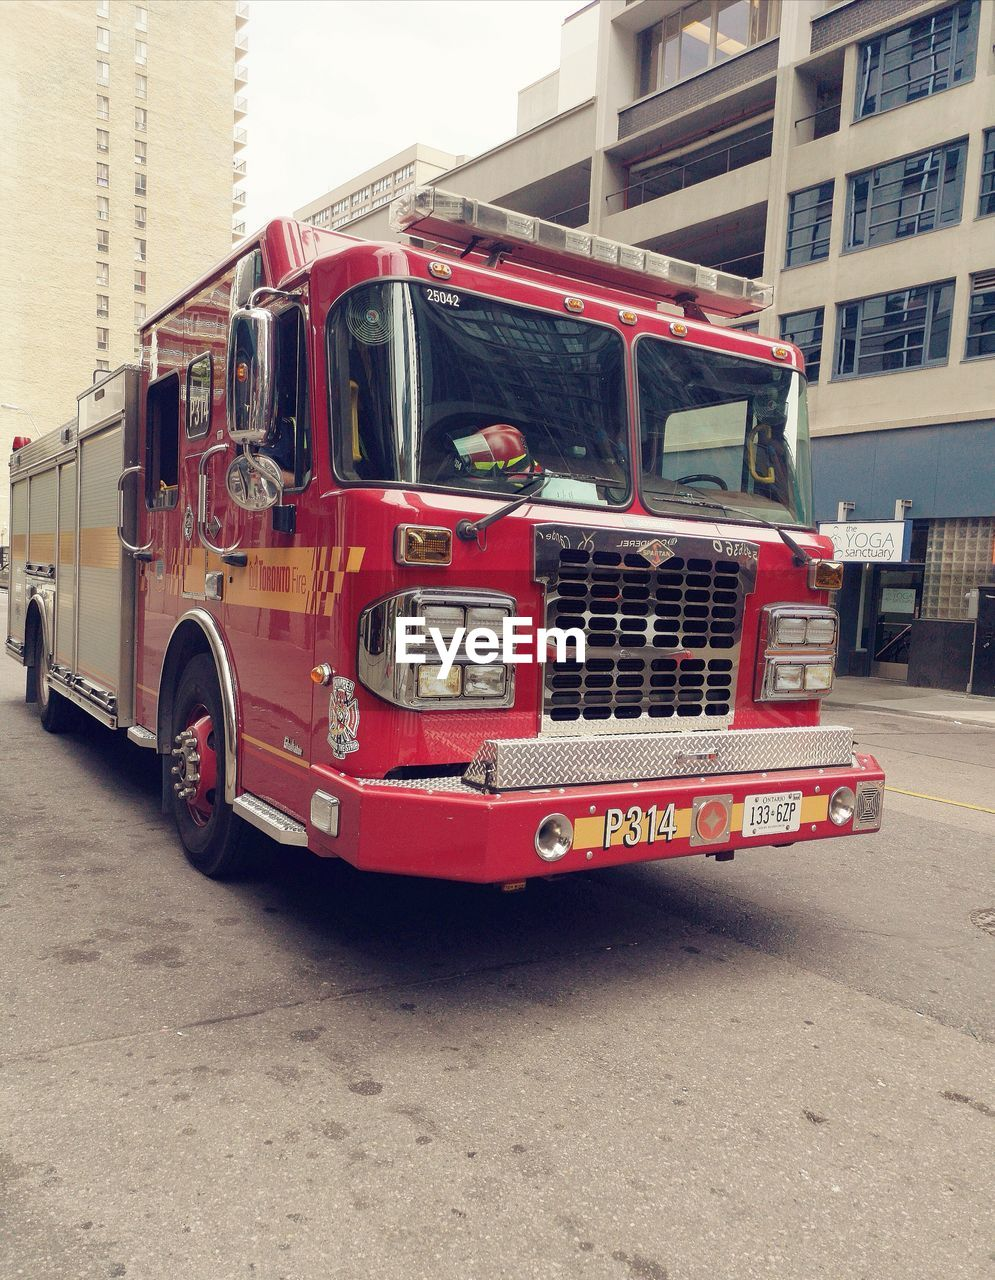 transportation, land vehicle, mode of transportation, red, architecture, building exterior, city, built structure, street, fire engine, day, road, public transportation, rescue, truck, building, no people, outdoors, motor vehicle